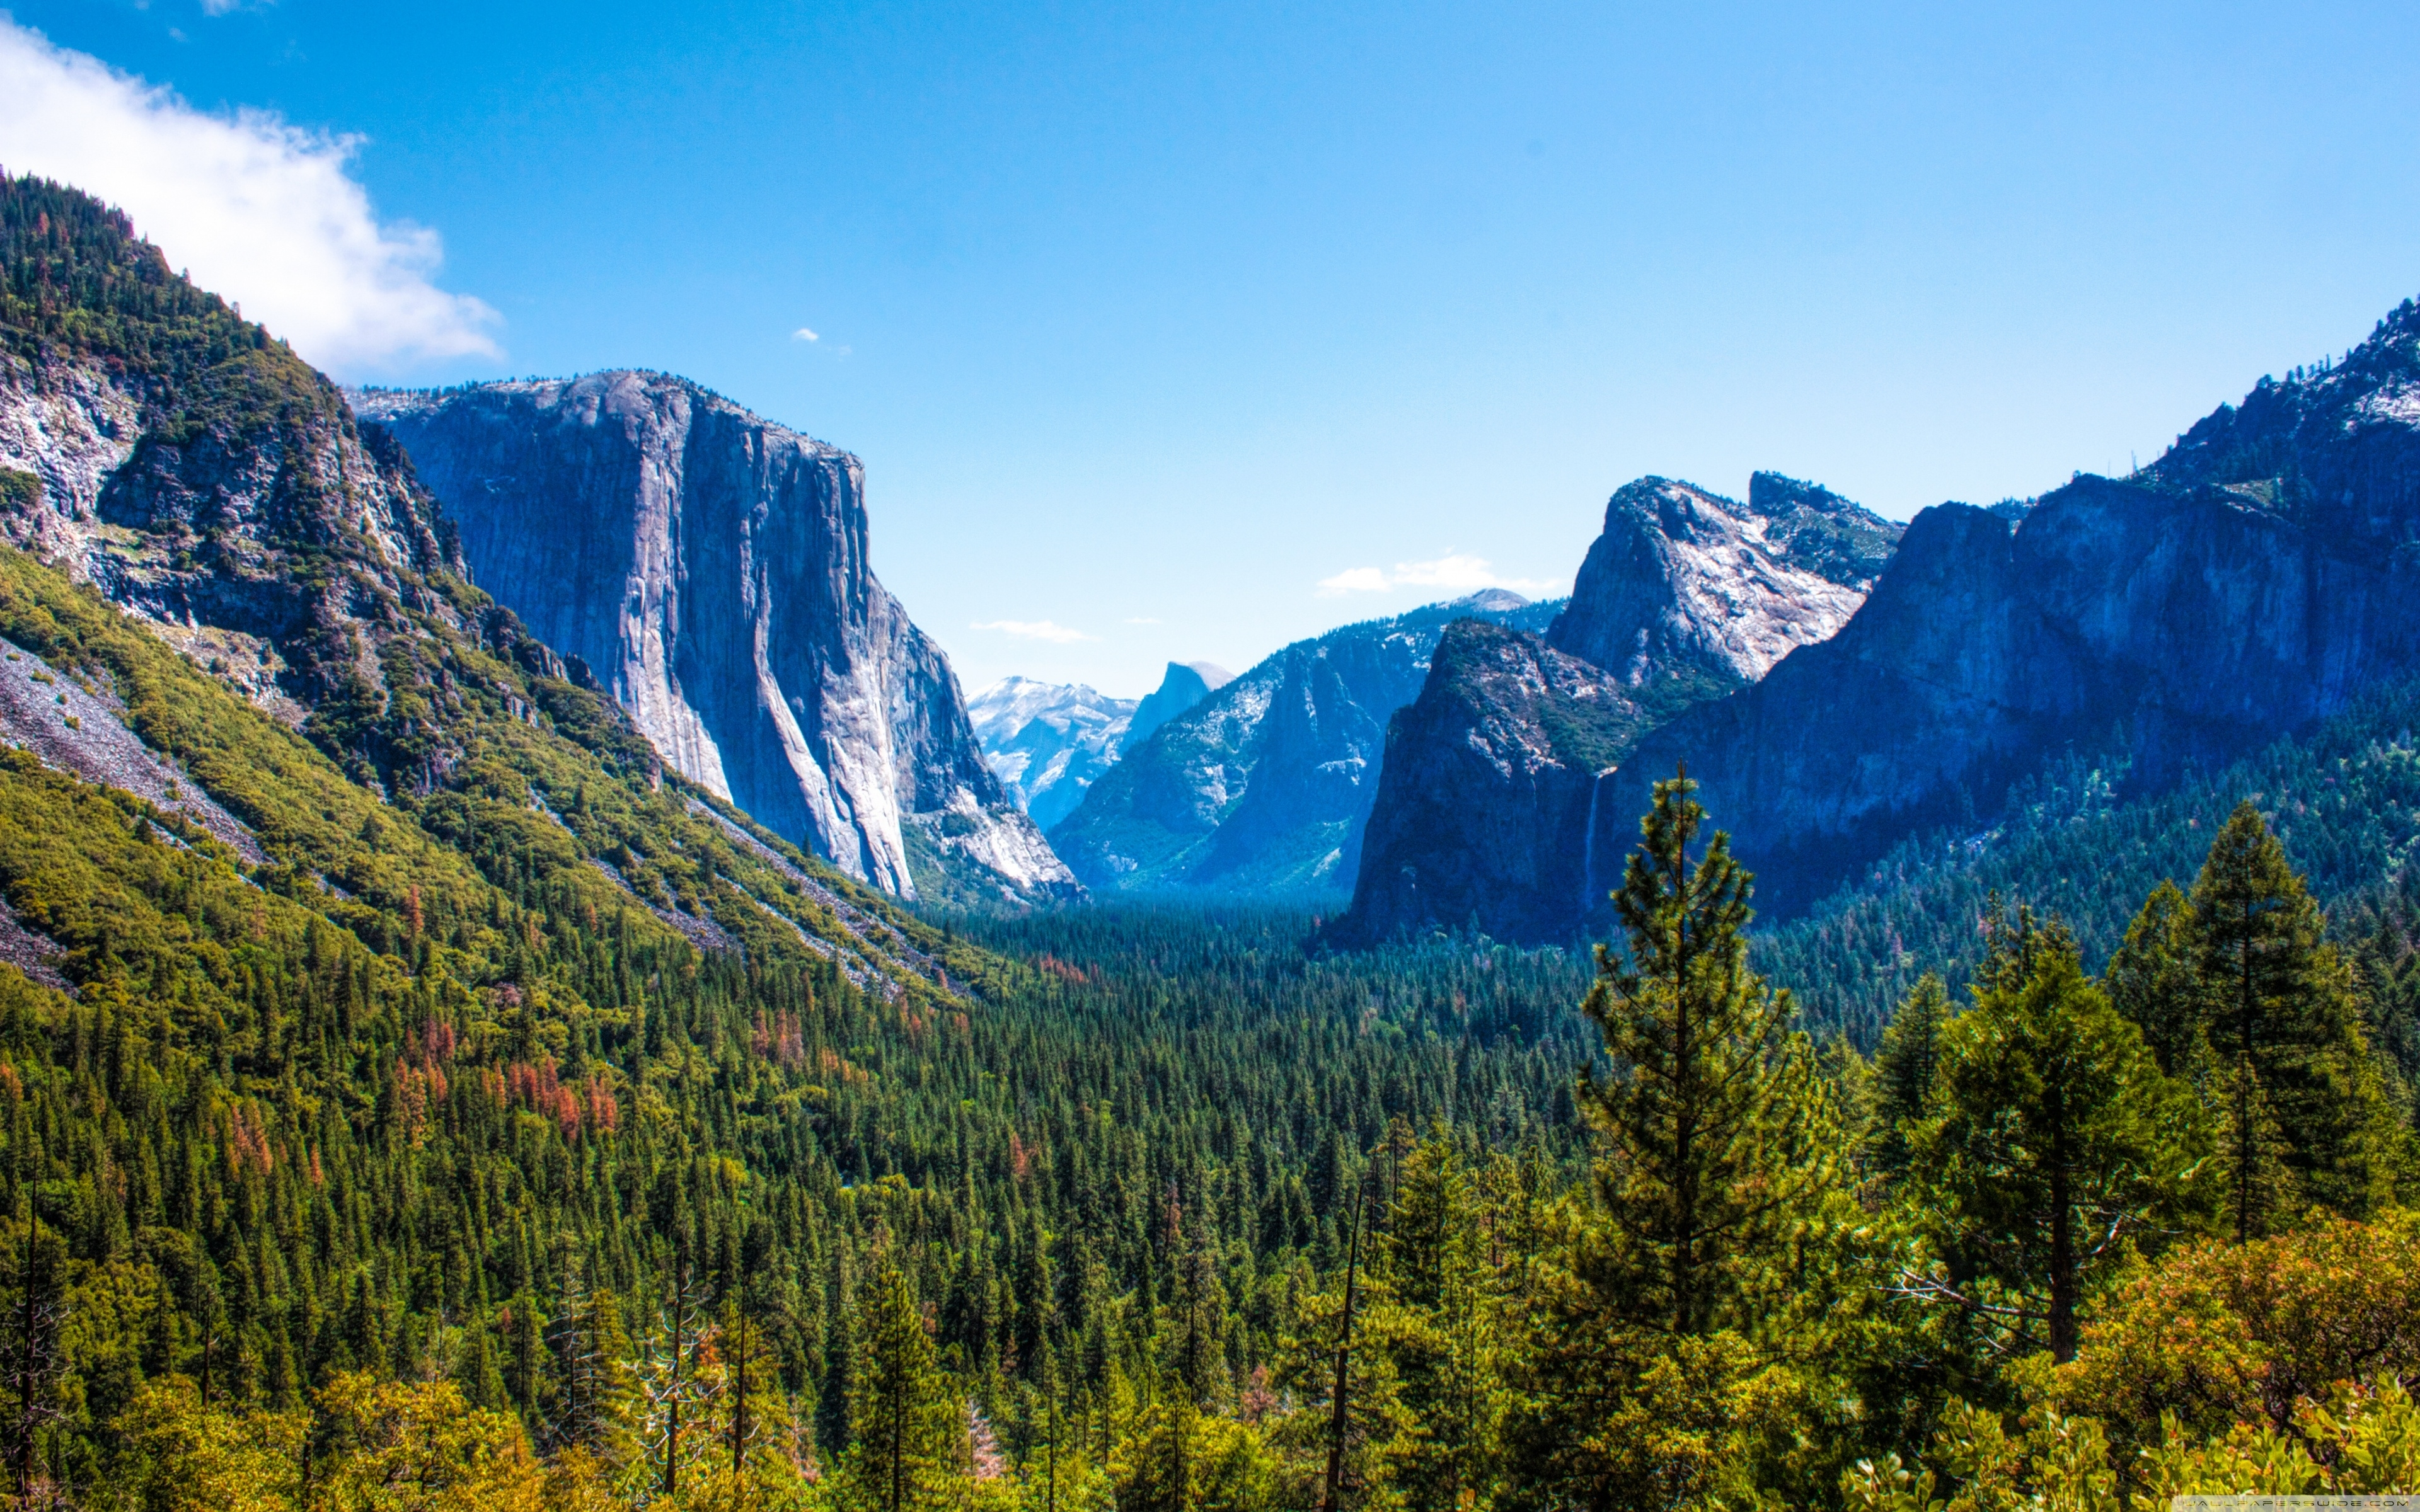 yosemite national park yosemite valley ❤ 4k hd desktop wallpaper